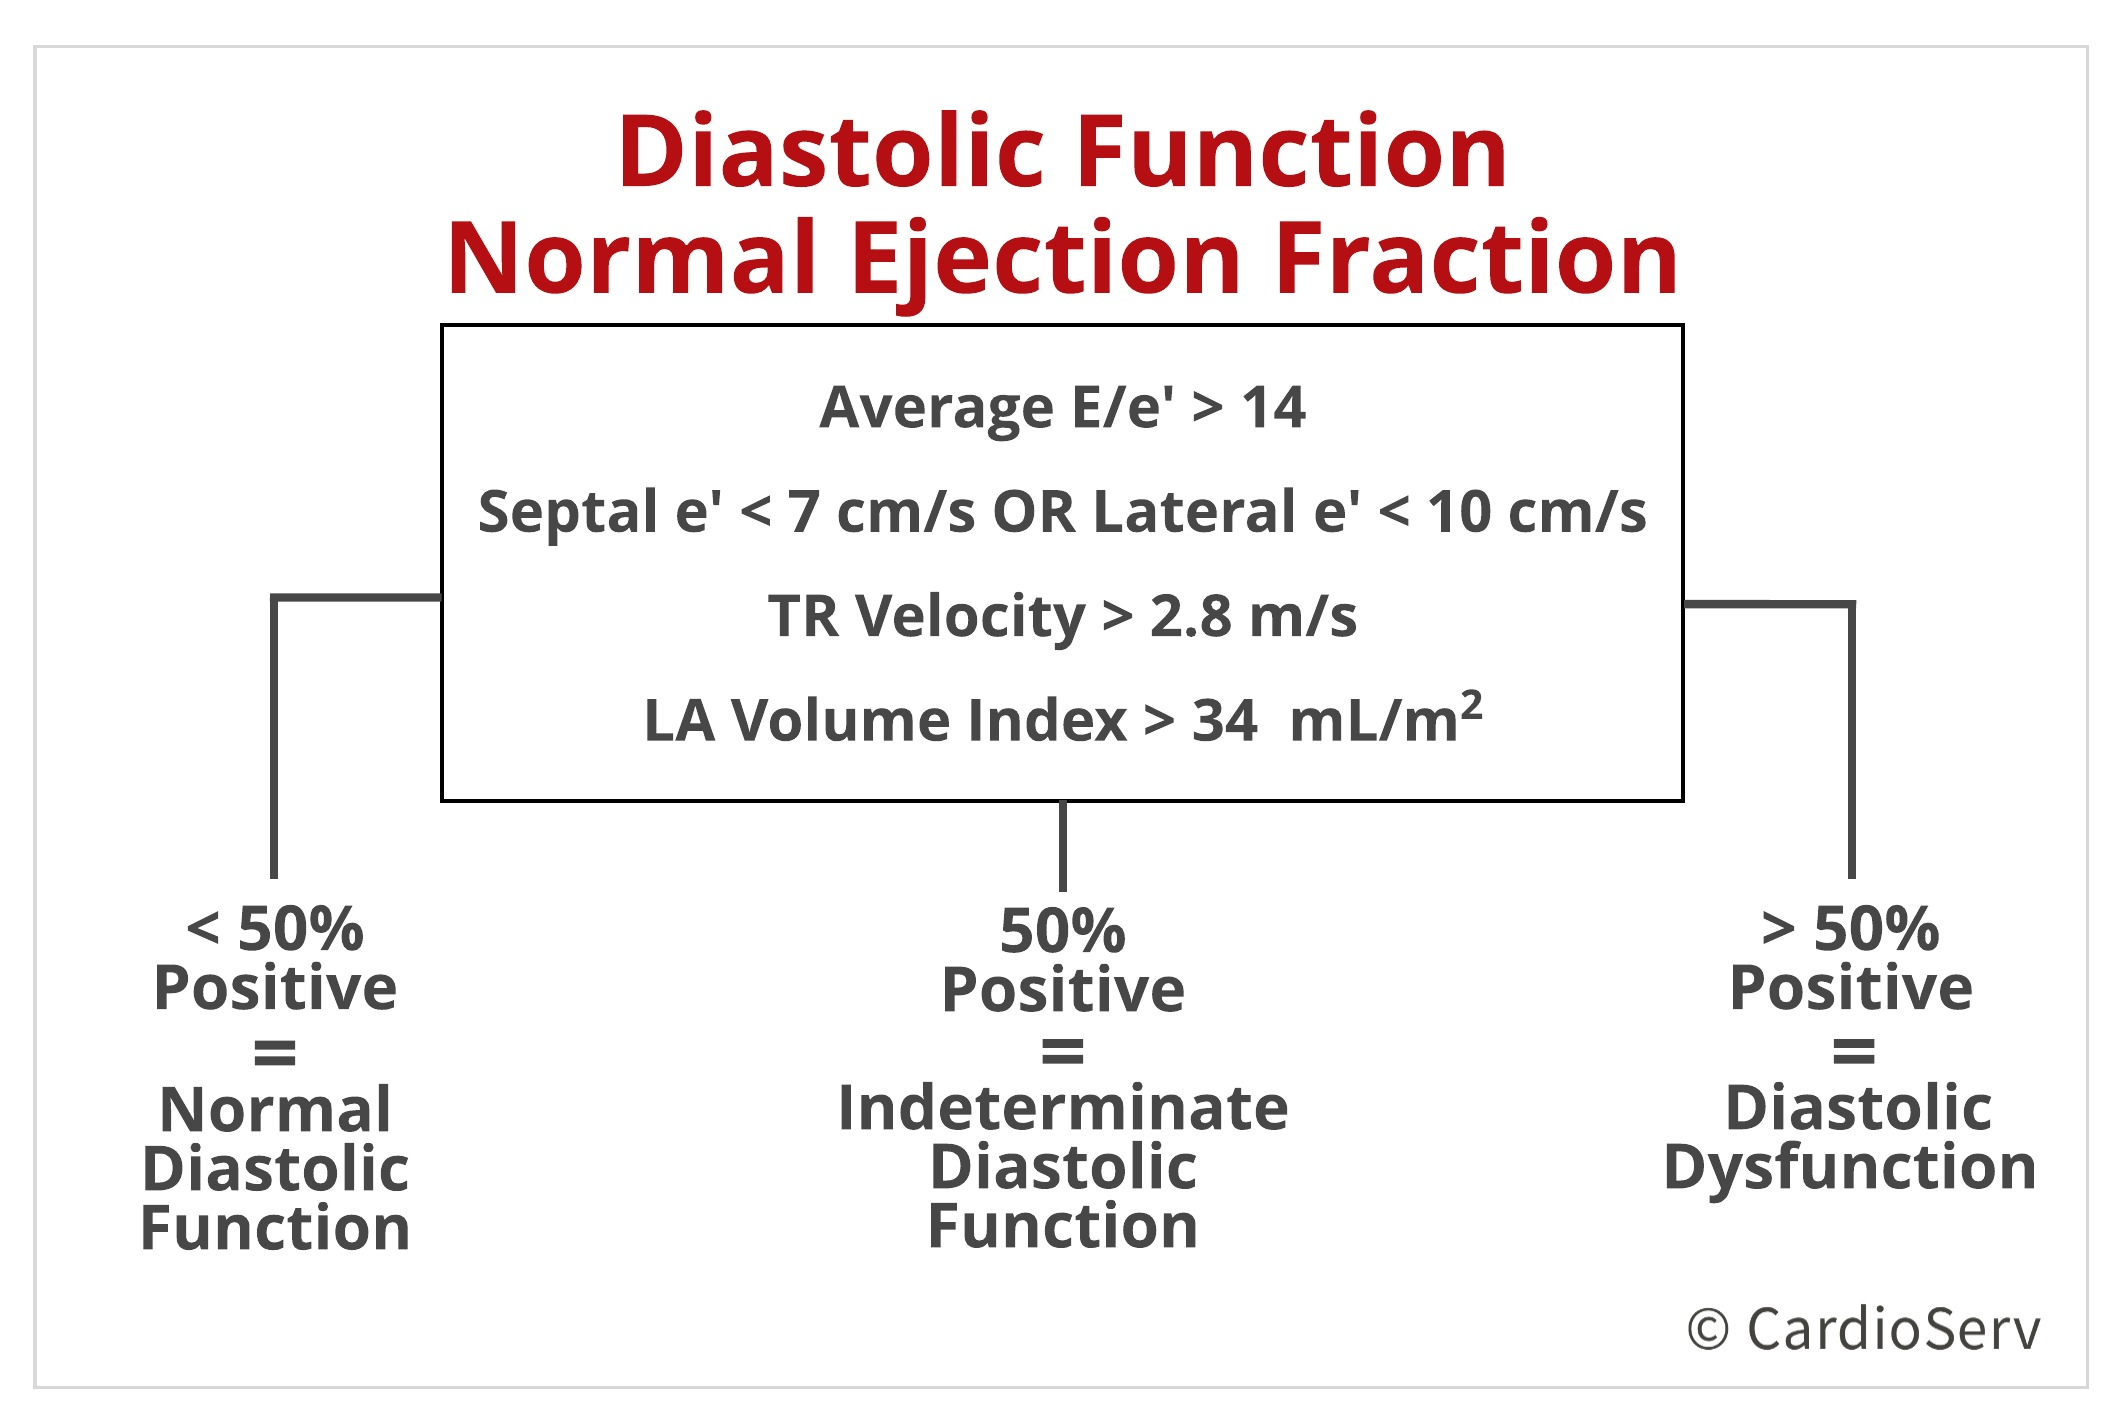 Normal Ejection Fraction Algorithm for ASE LV Diastolic Function Evaluation